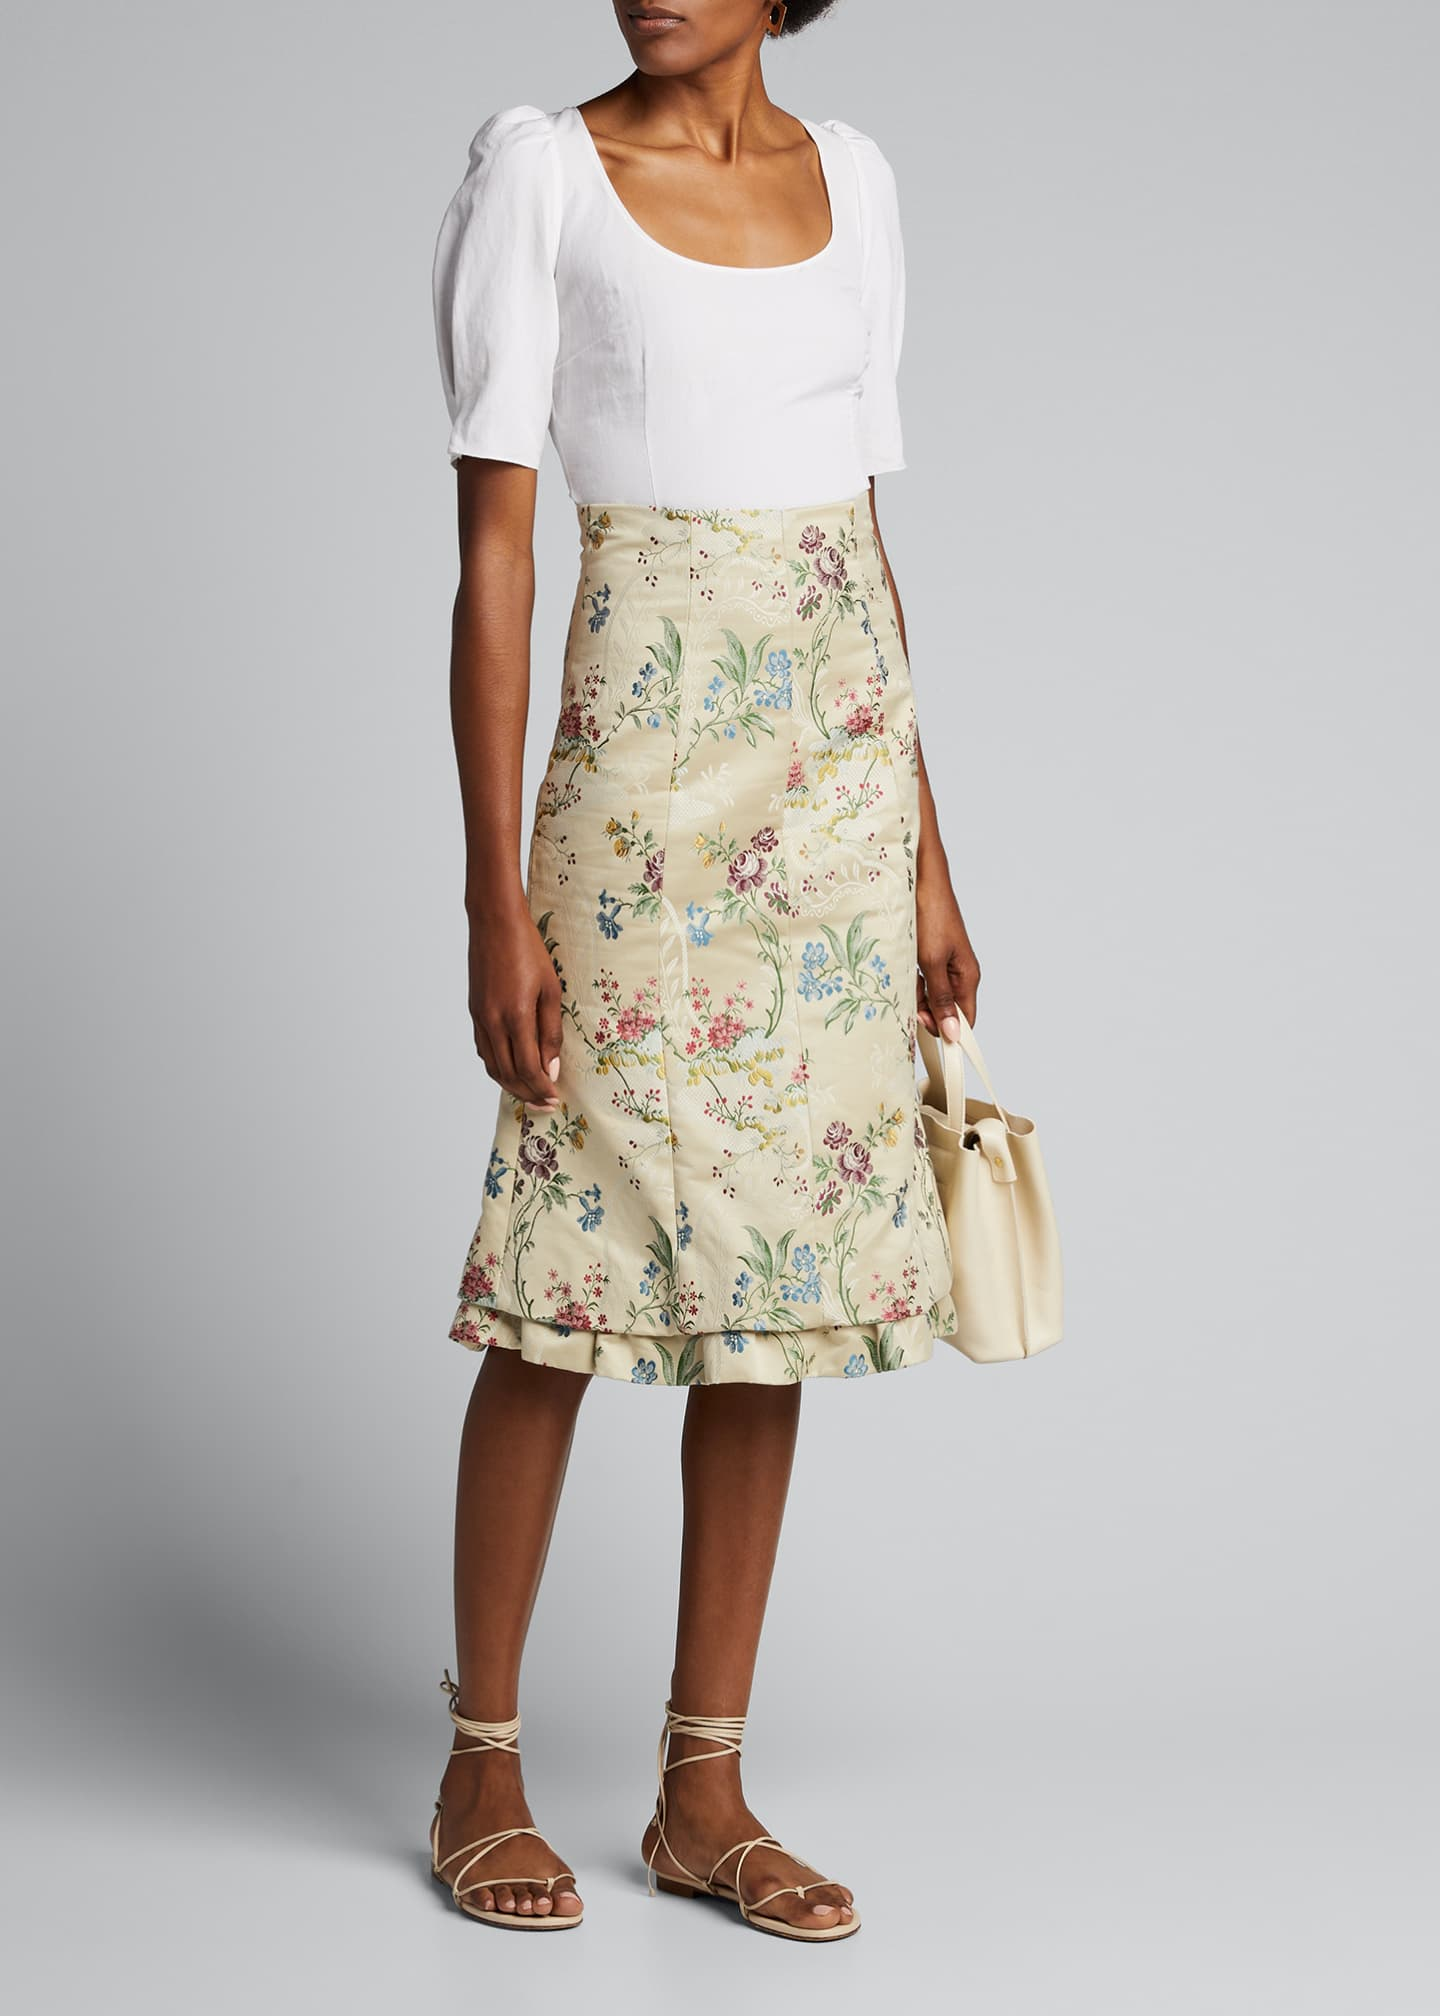 Brock Collection Floral-Print High-Rise Skirt